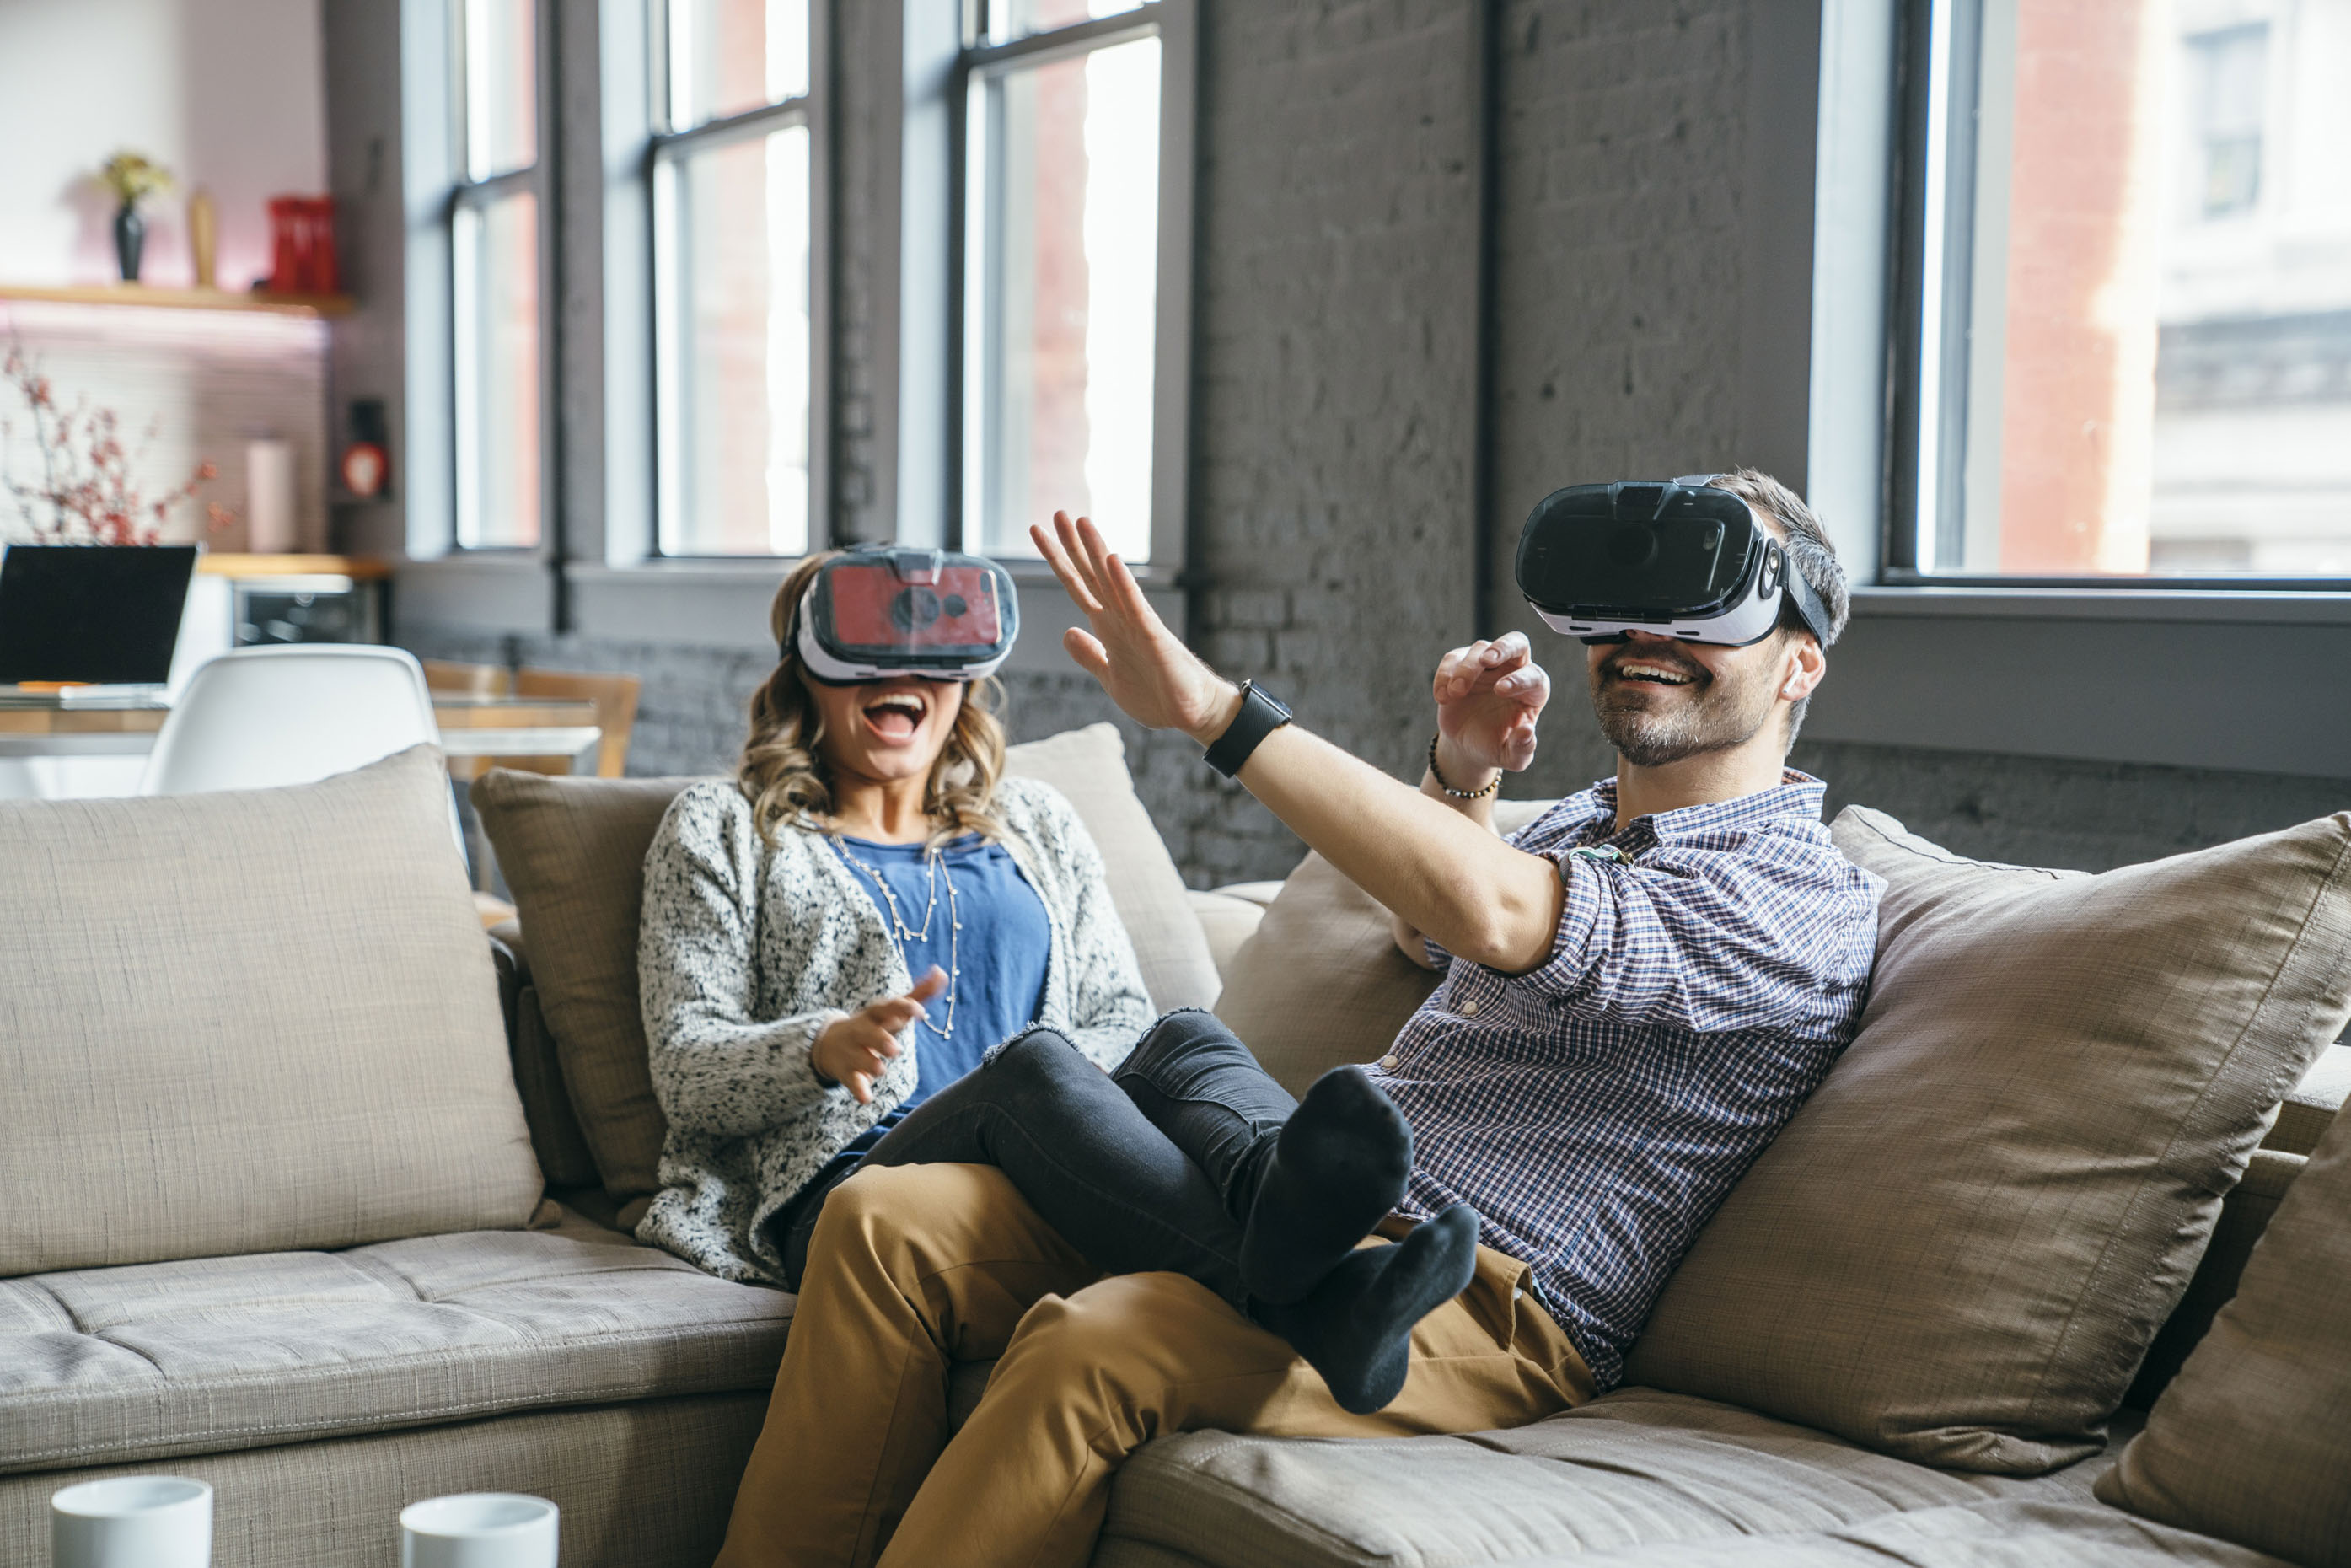 Couple-virtual-reality-glasses-on-couch-laughing-Inti-St-Clair-LYDA_201612133331